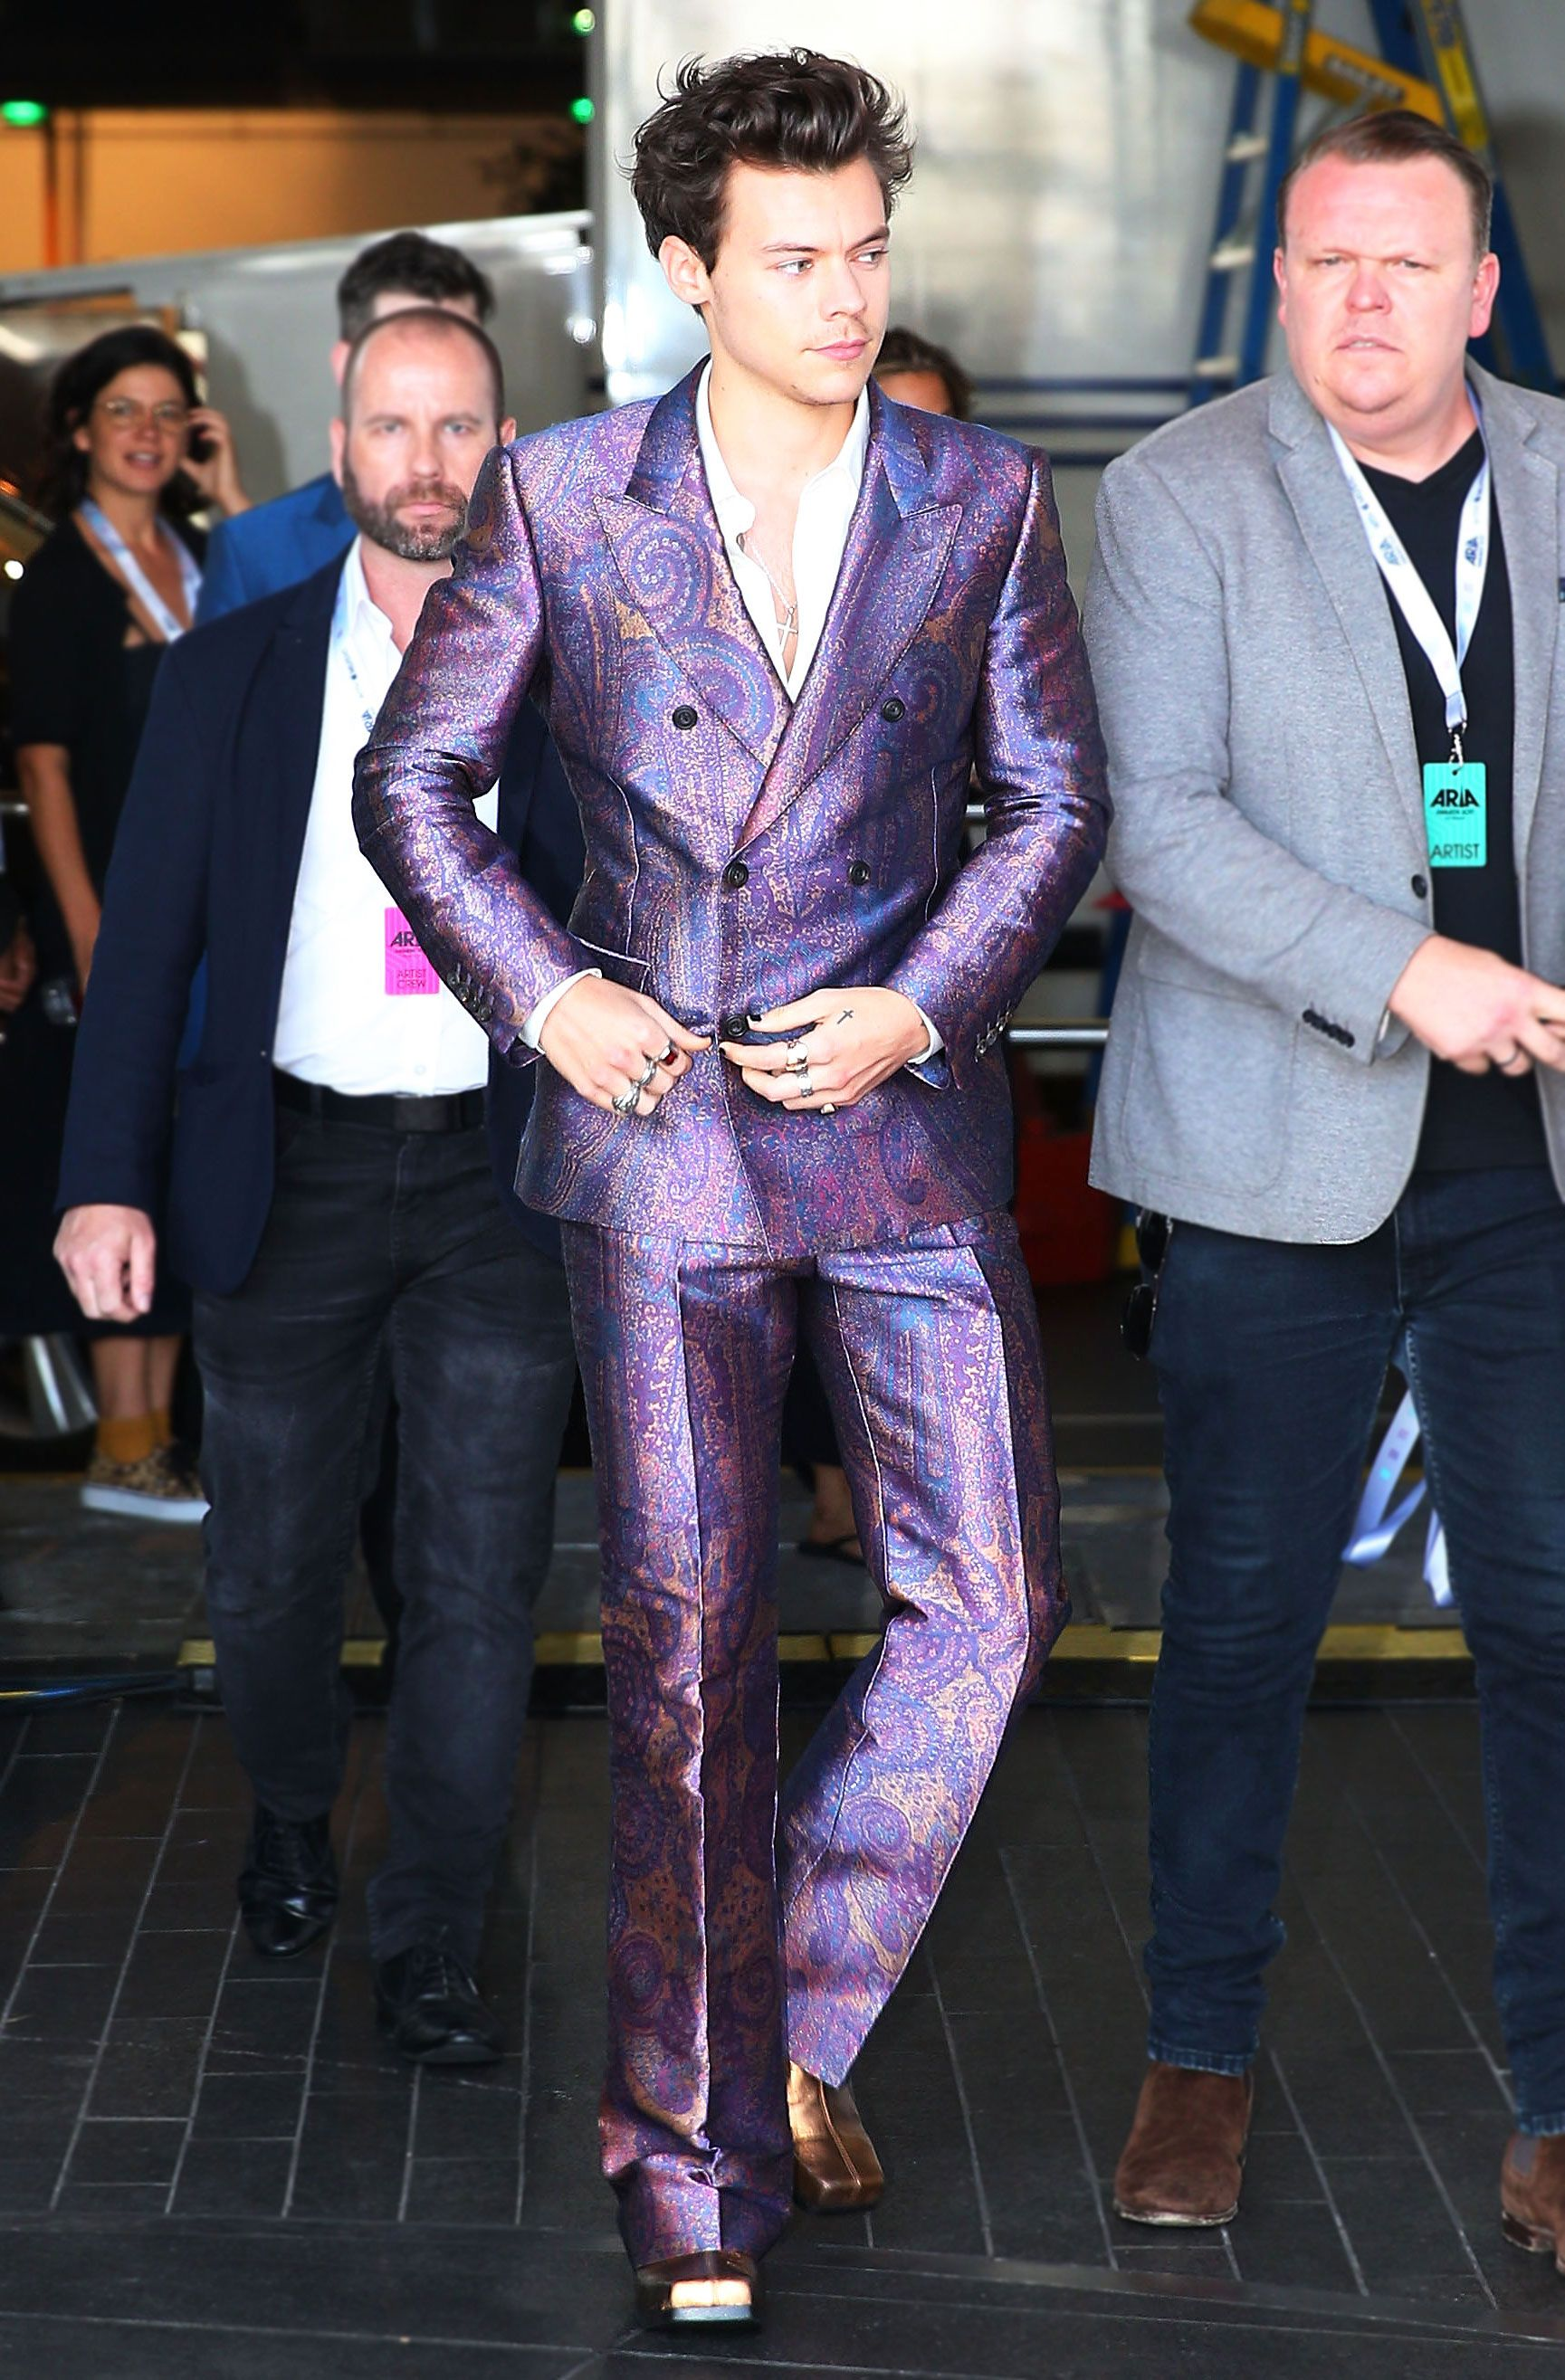 Met Gala Host Harry Styles Knows How To Rock A Party Suit